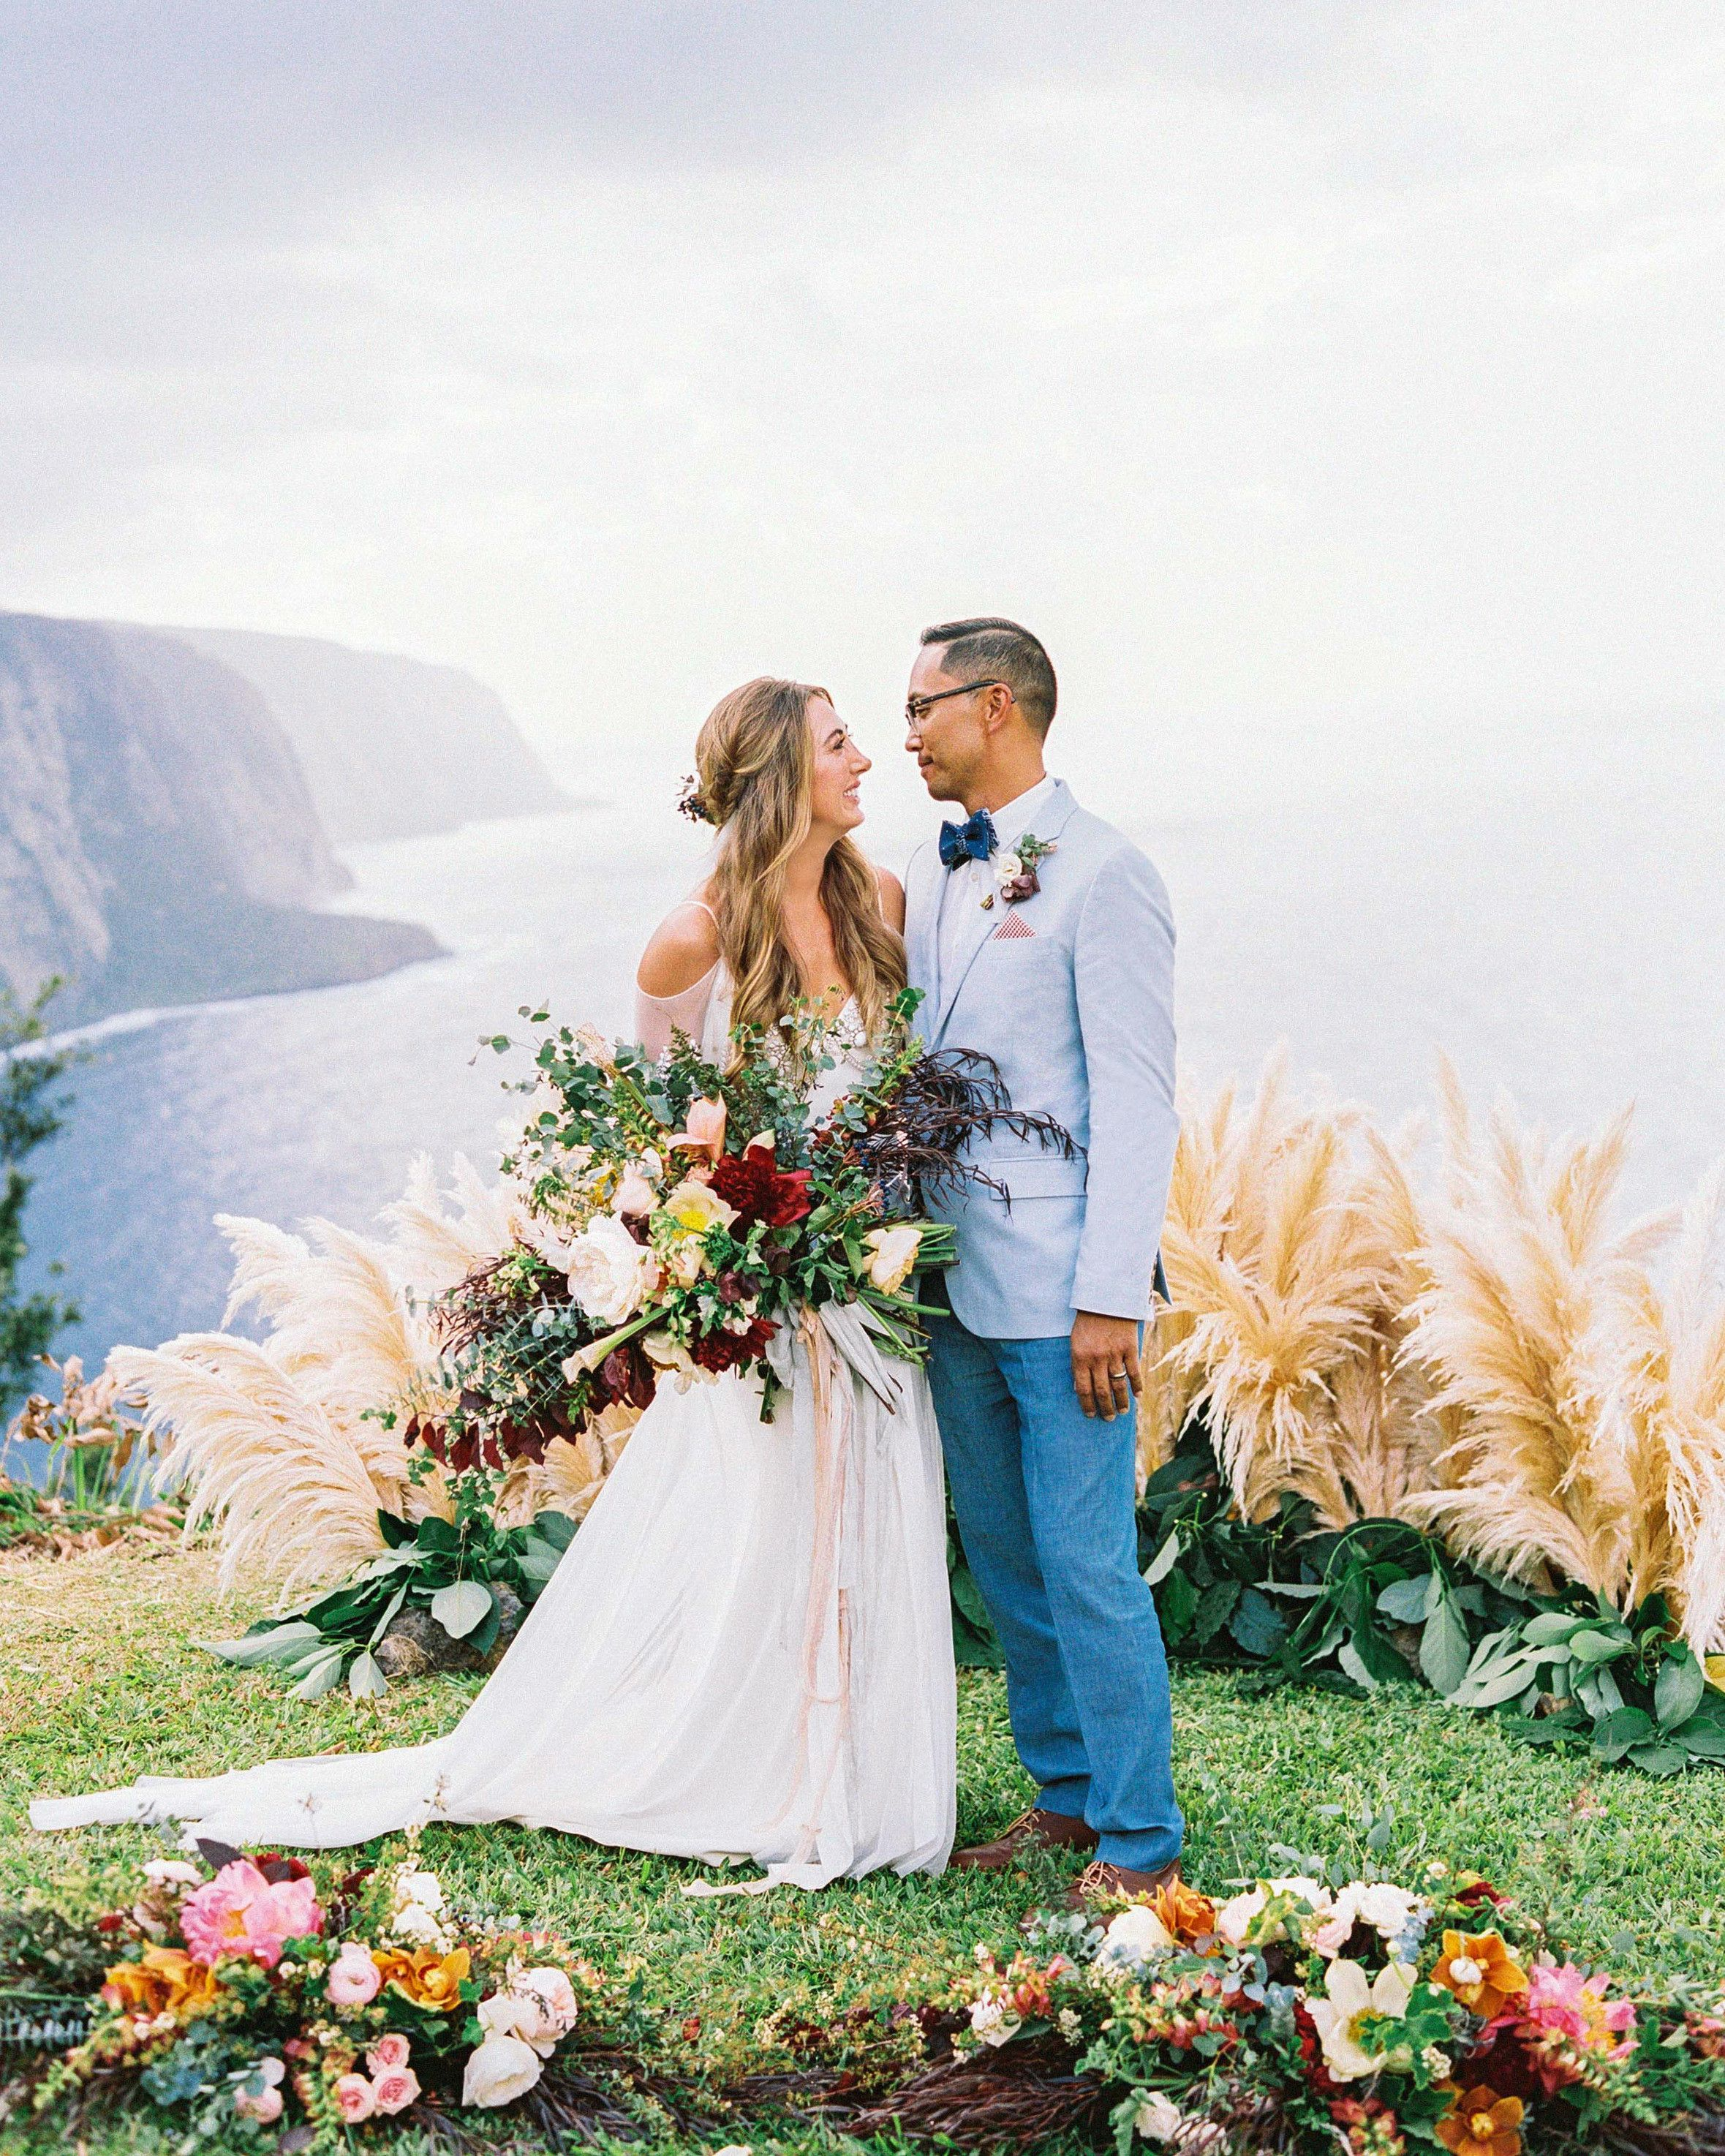 The Bride And Groom Wed On A Bluff 750 Feet Above The Pacific Ocean And Then Celebrated With 30 Loved Ones Isla Hawaii Wedding Hawaiian Wedding Cliff Wedding